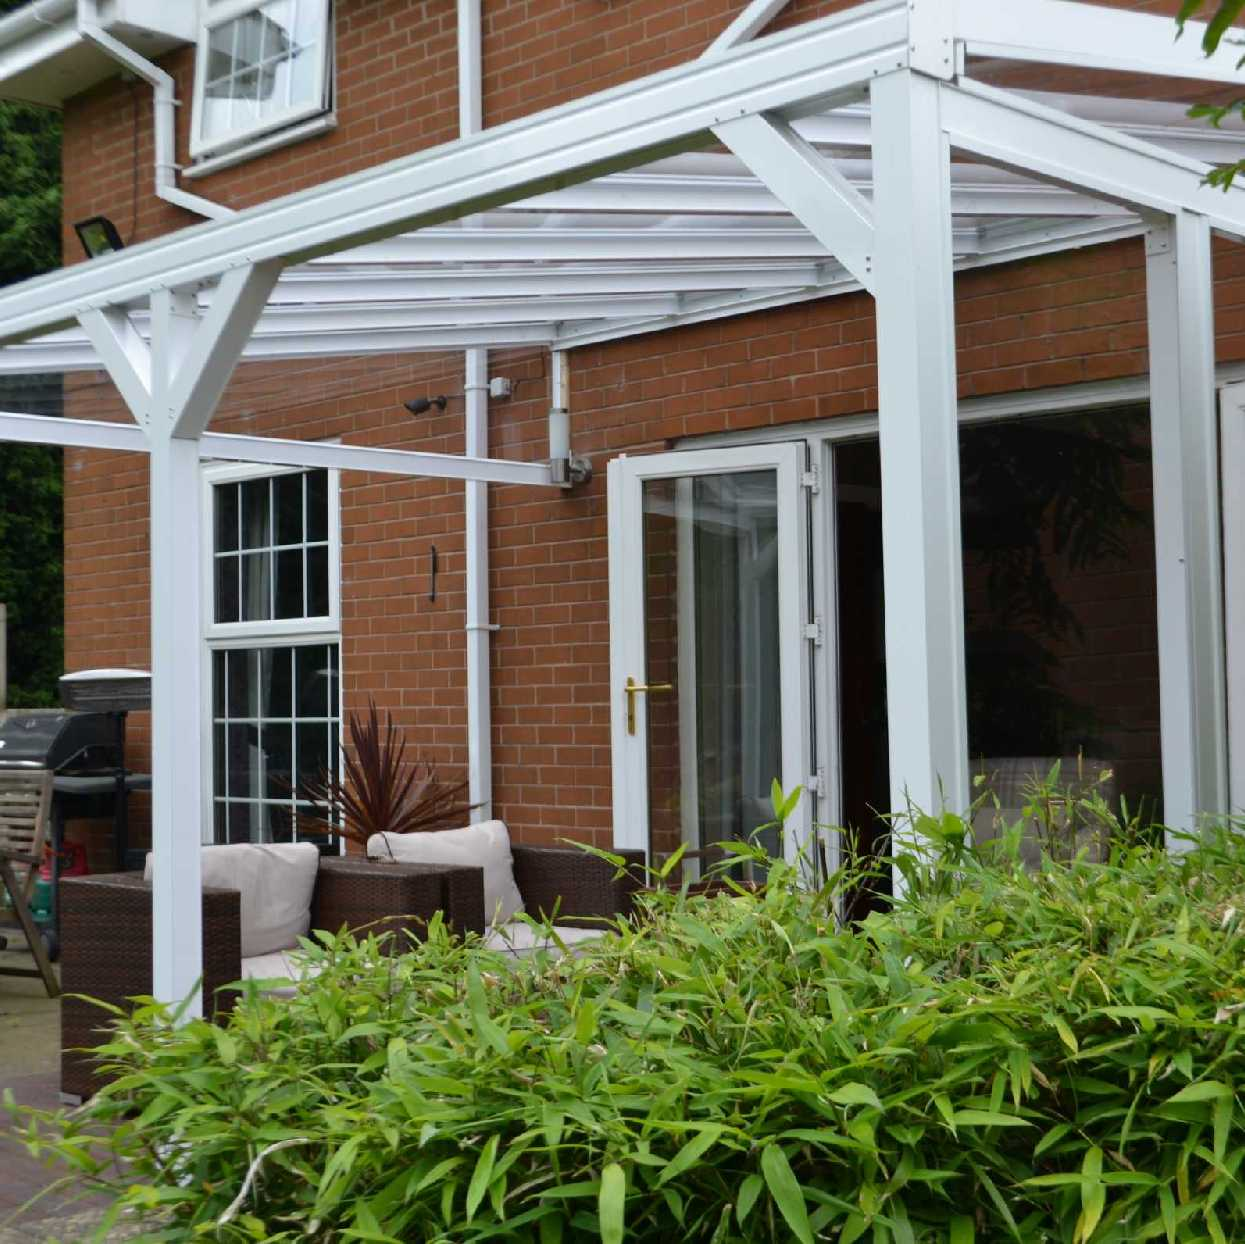 Omega Smart White Lean-To Canopy with 6mm Glass Clear Plate Polycarbonate Glazing - 7.4m (W) x 4.0m (P), (4) Supporting Posts from Omega Build